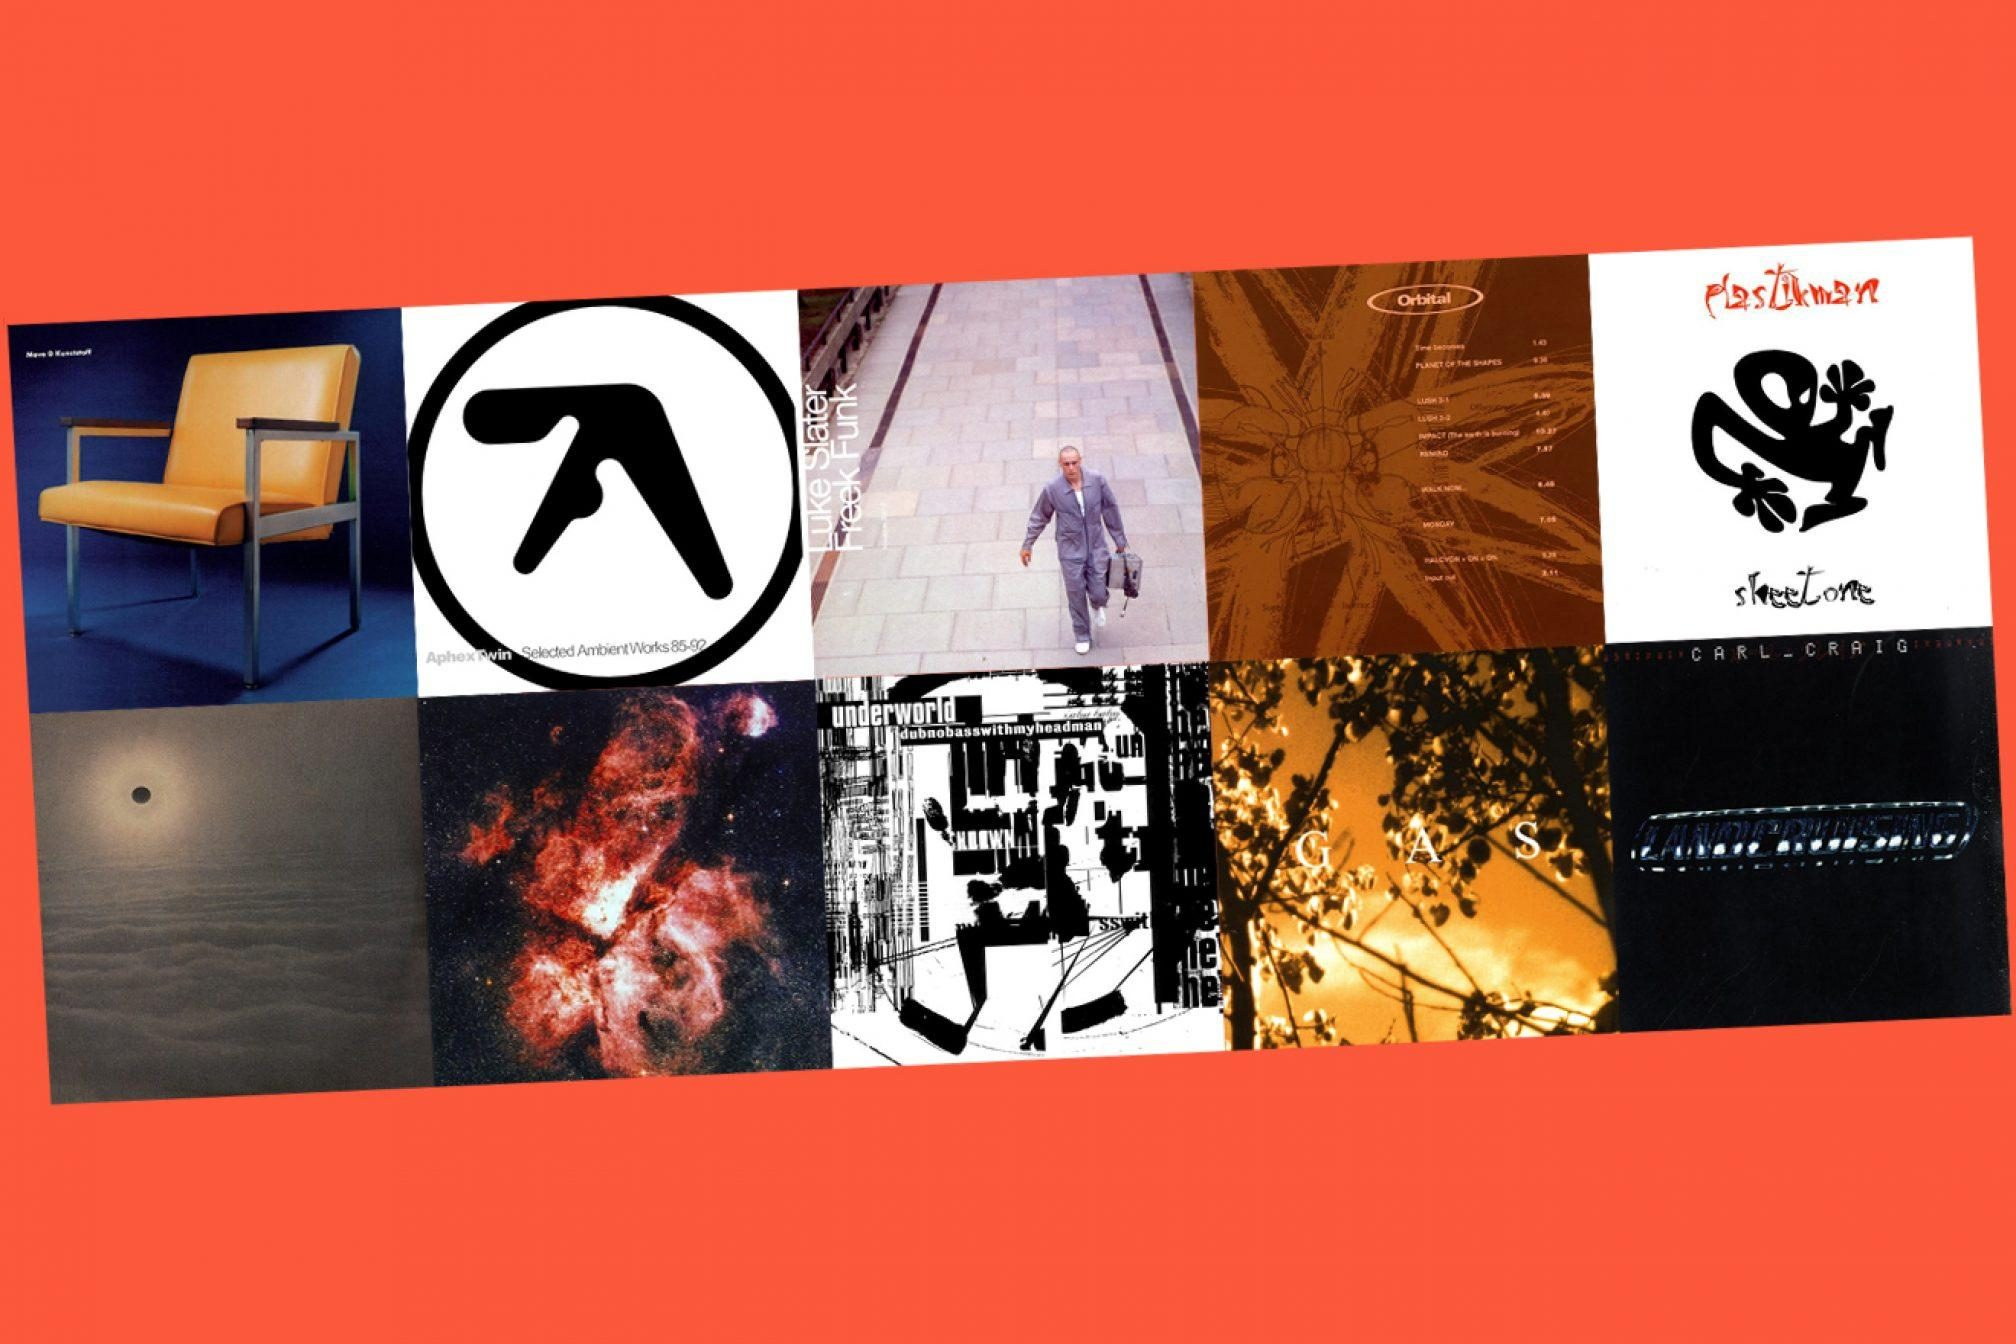 The 10 best 90s techno albums - Lists - Mixmag